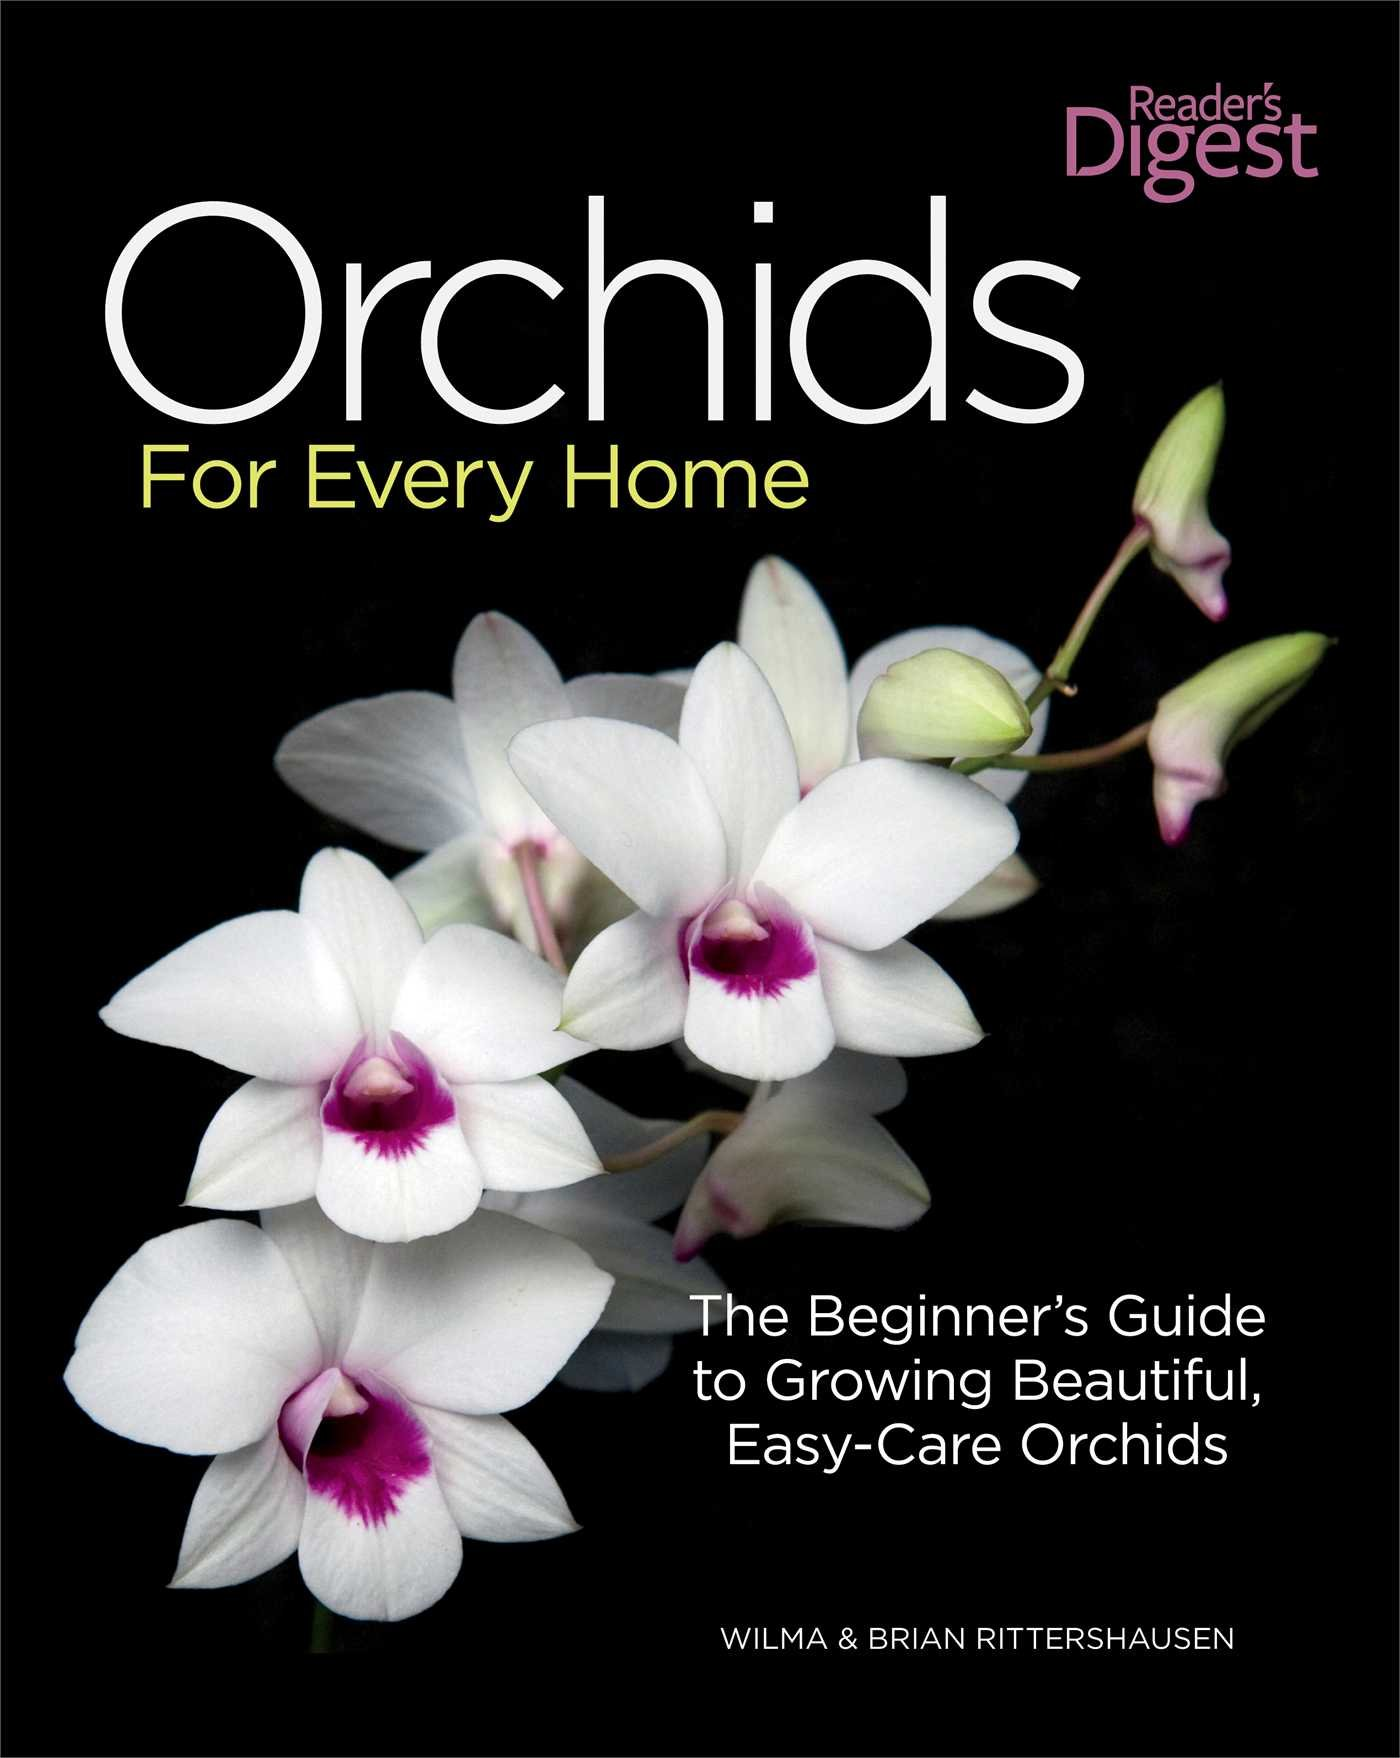 Orchids for Every Home: The Beginner's Guide to Growing Beautiful,  Easy-Care Orchids: Wilma Rittershausen, Brian Rittershausen: 9781606522059:  Amazon.com: ...